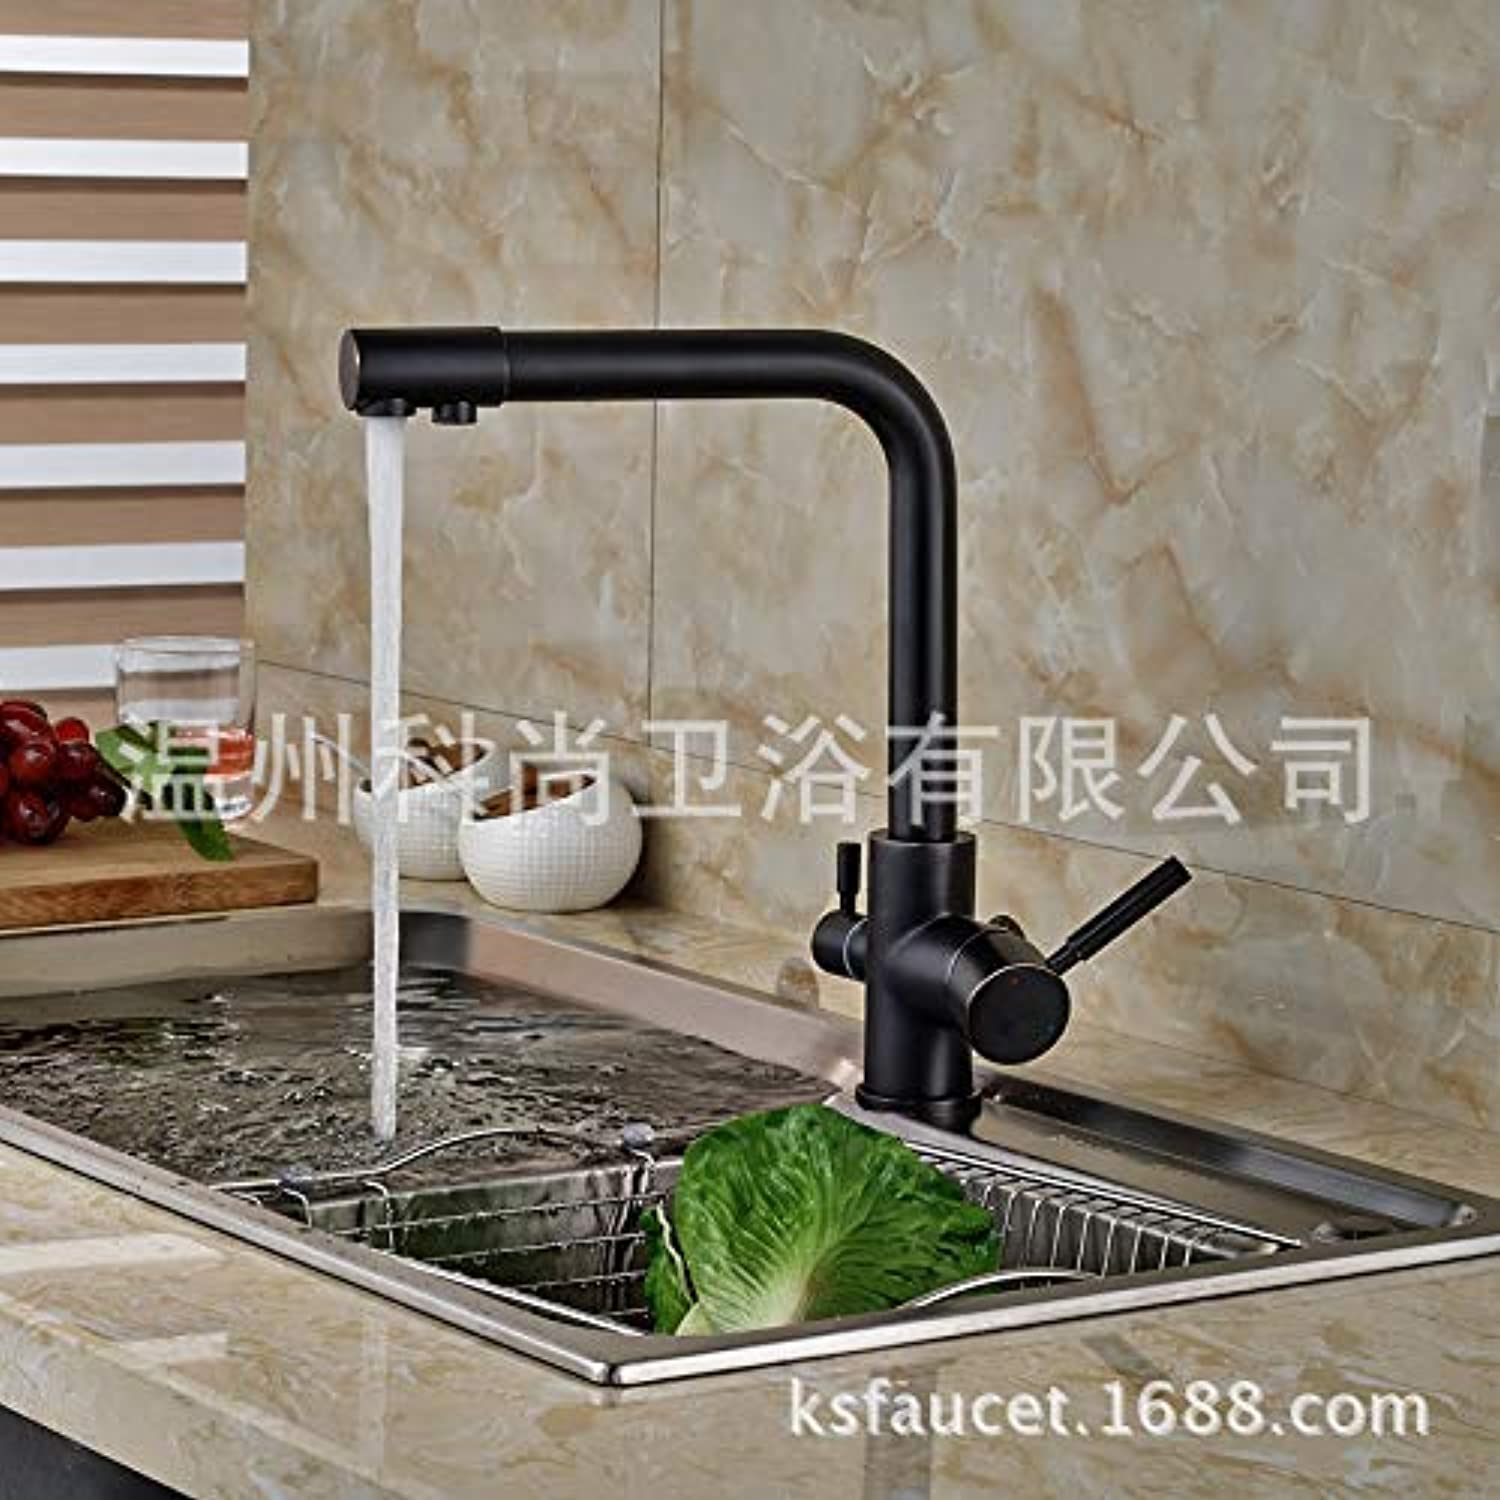 redOOY Taps Faucet Copper Black Water Purifier Straight Drink Kitchen Hot And Cold Dual-Use Net Faucet